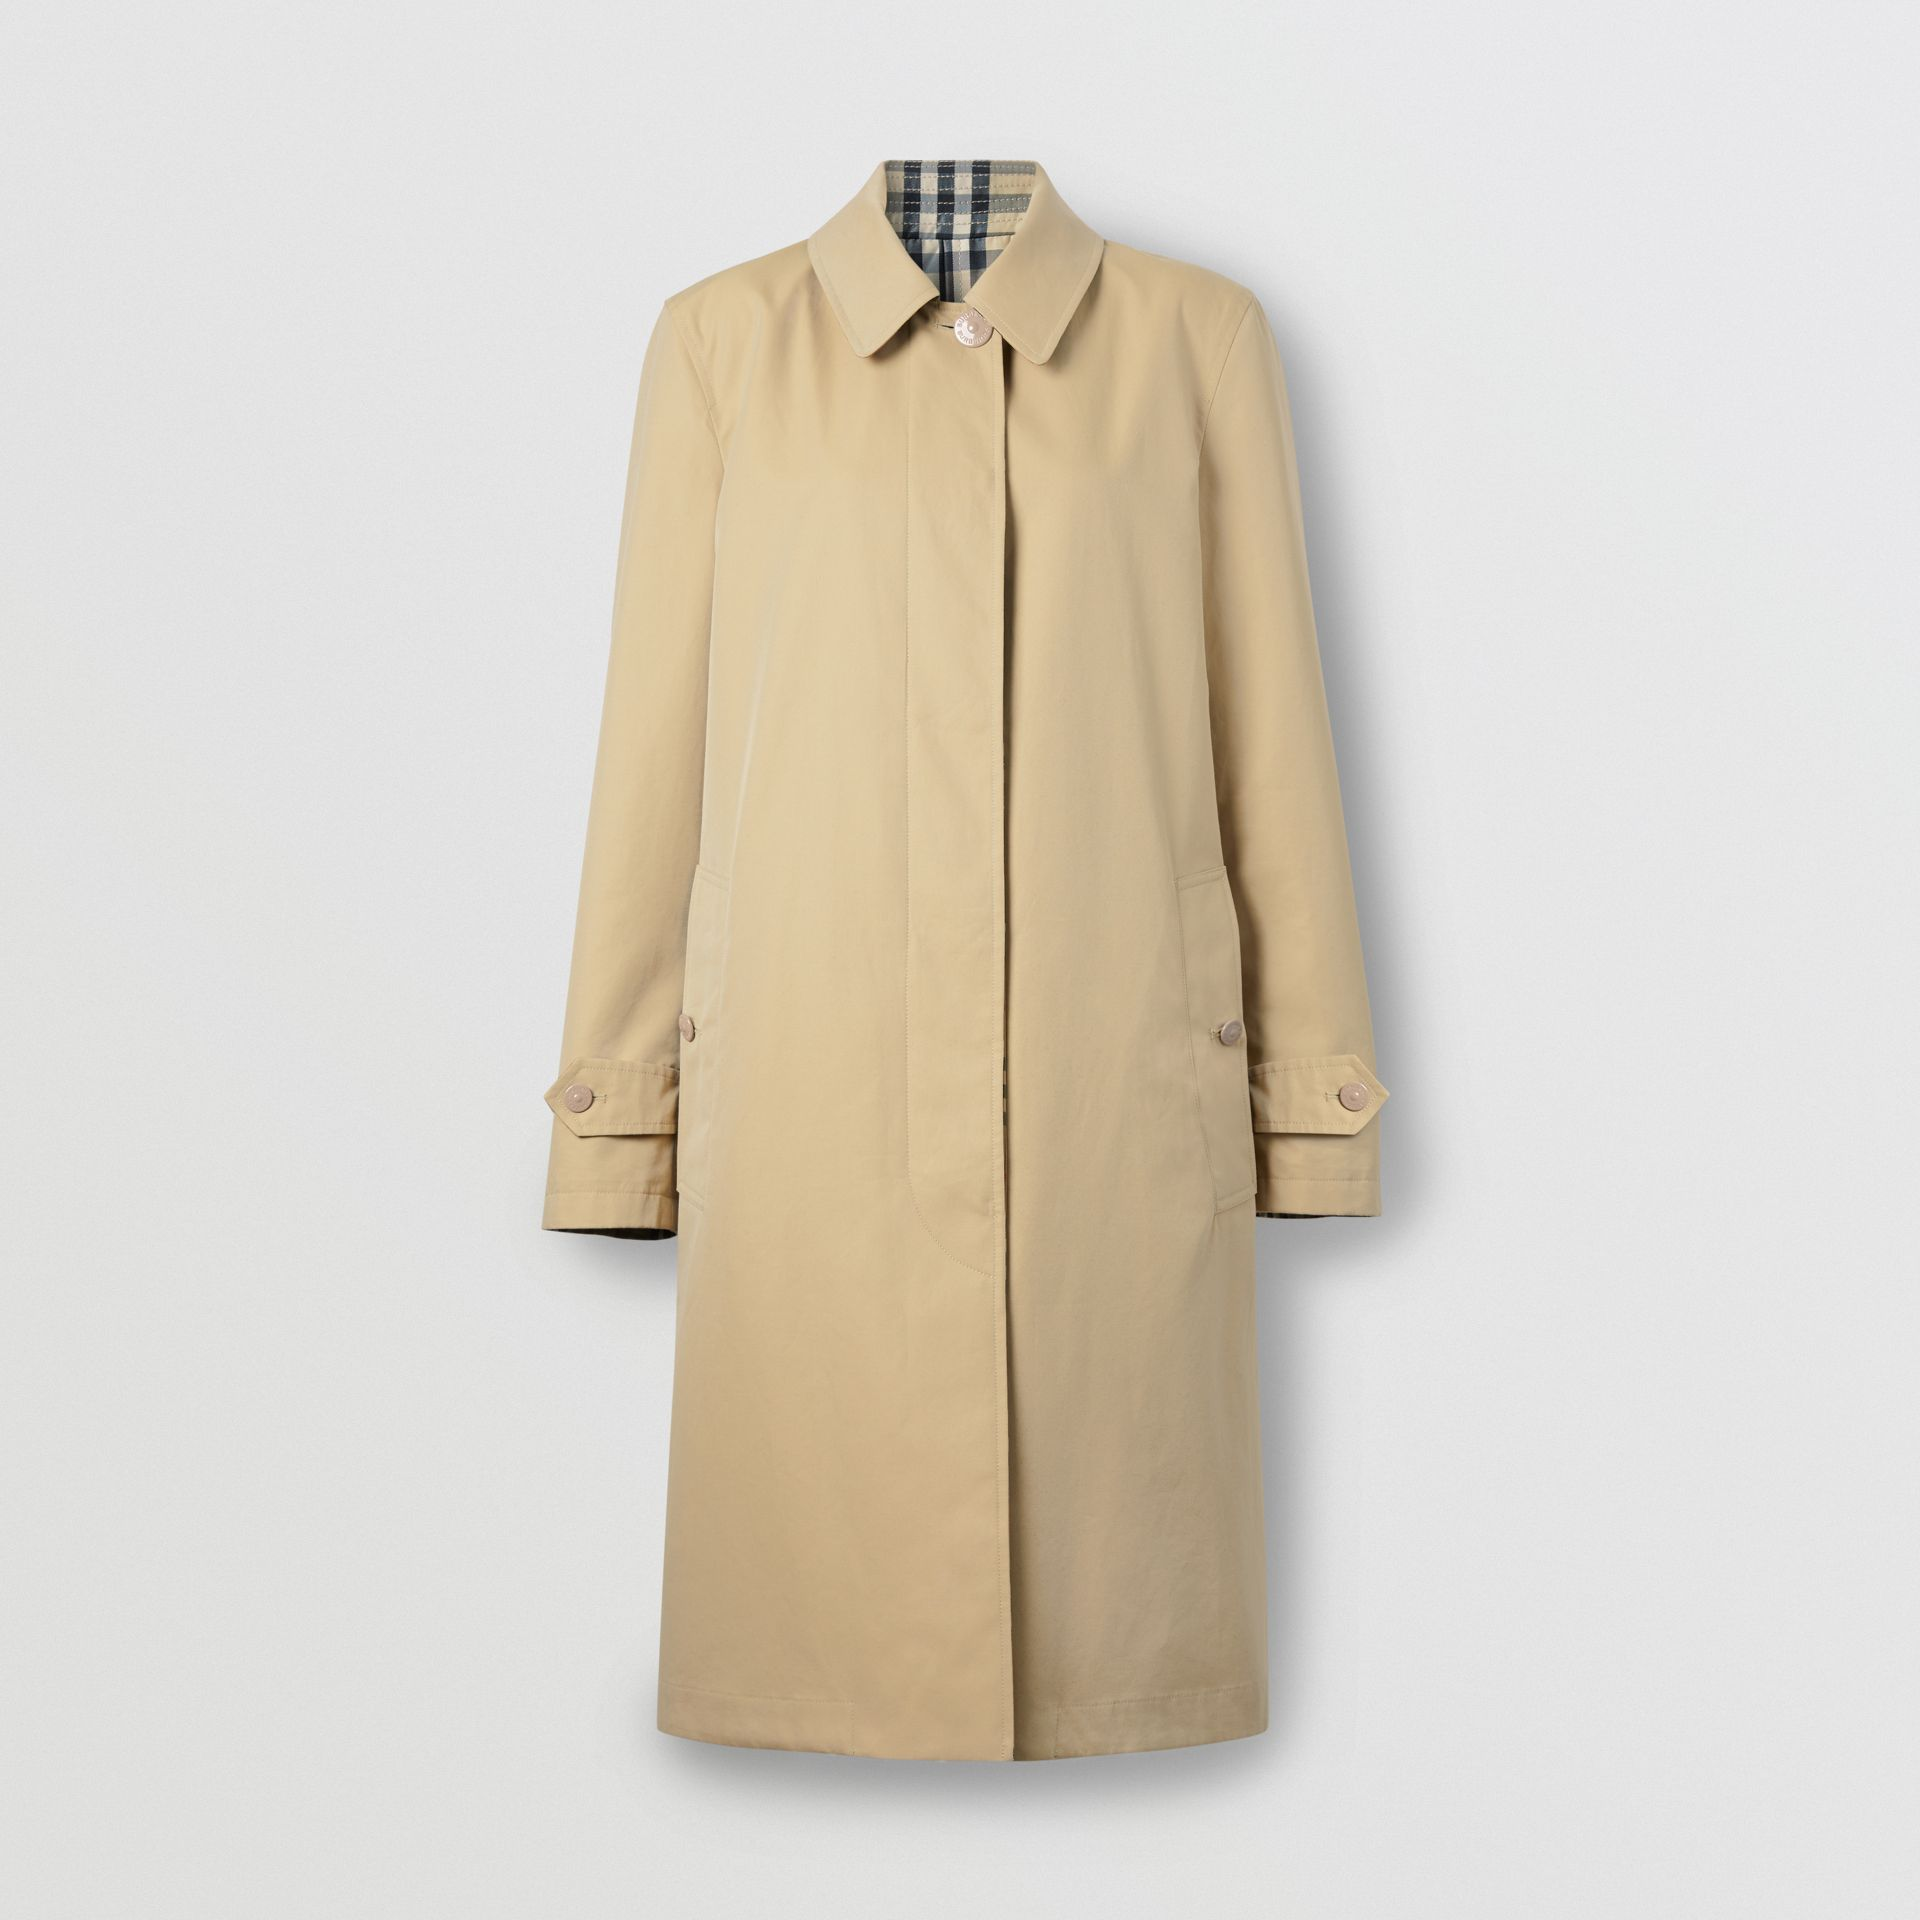 Reversible Cotton and Vintage Check Car Coat in Honey - Women | Burberry Canada - gallery image 2